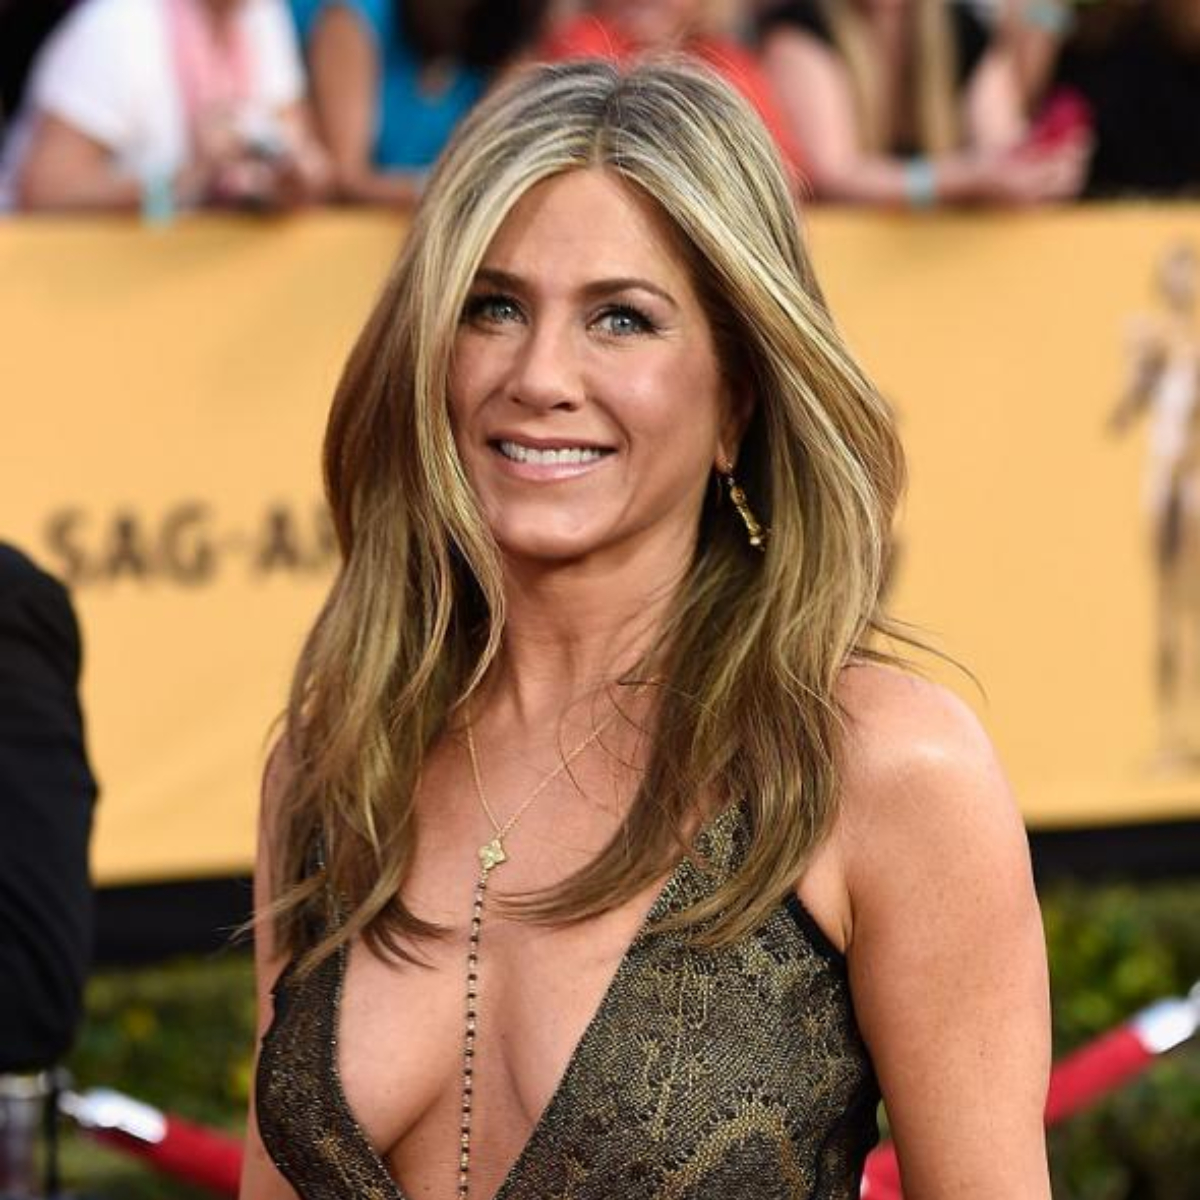 People's Choice Awards 2019: Jennifer Aniston to receive the honour of People's Icon Award